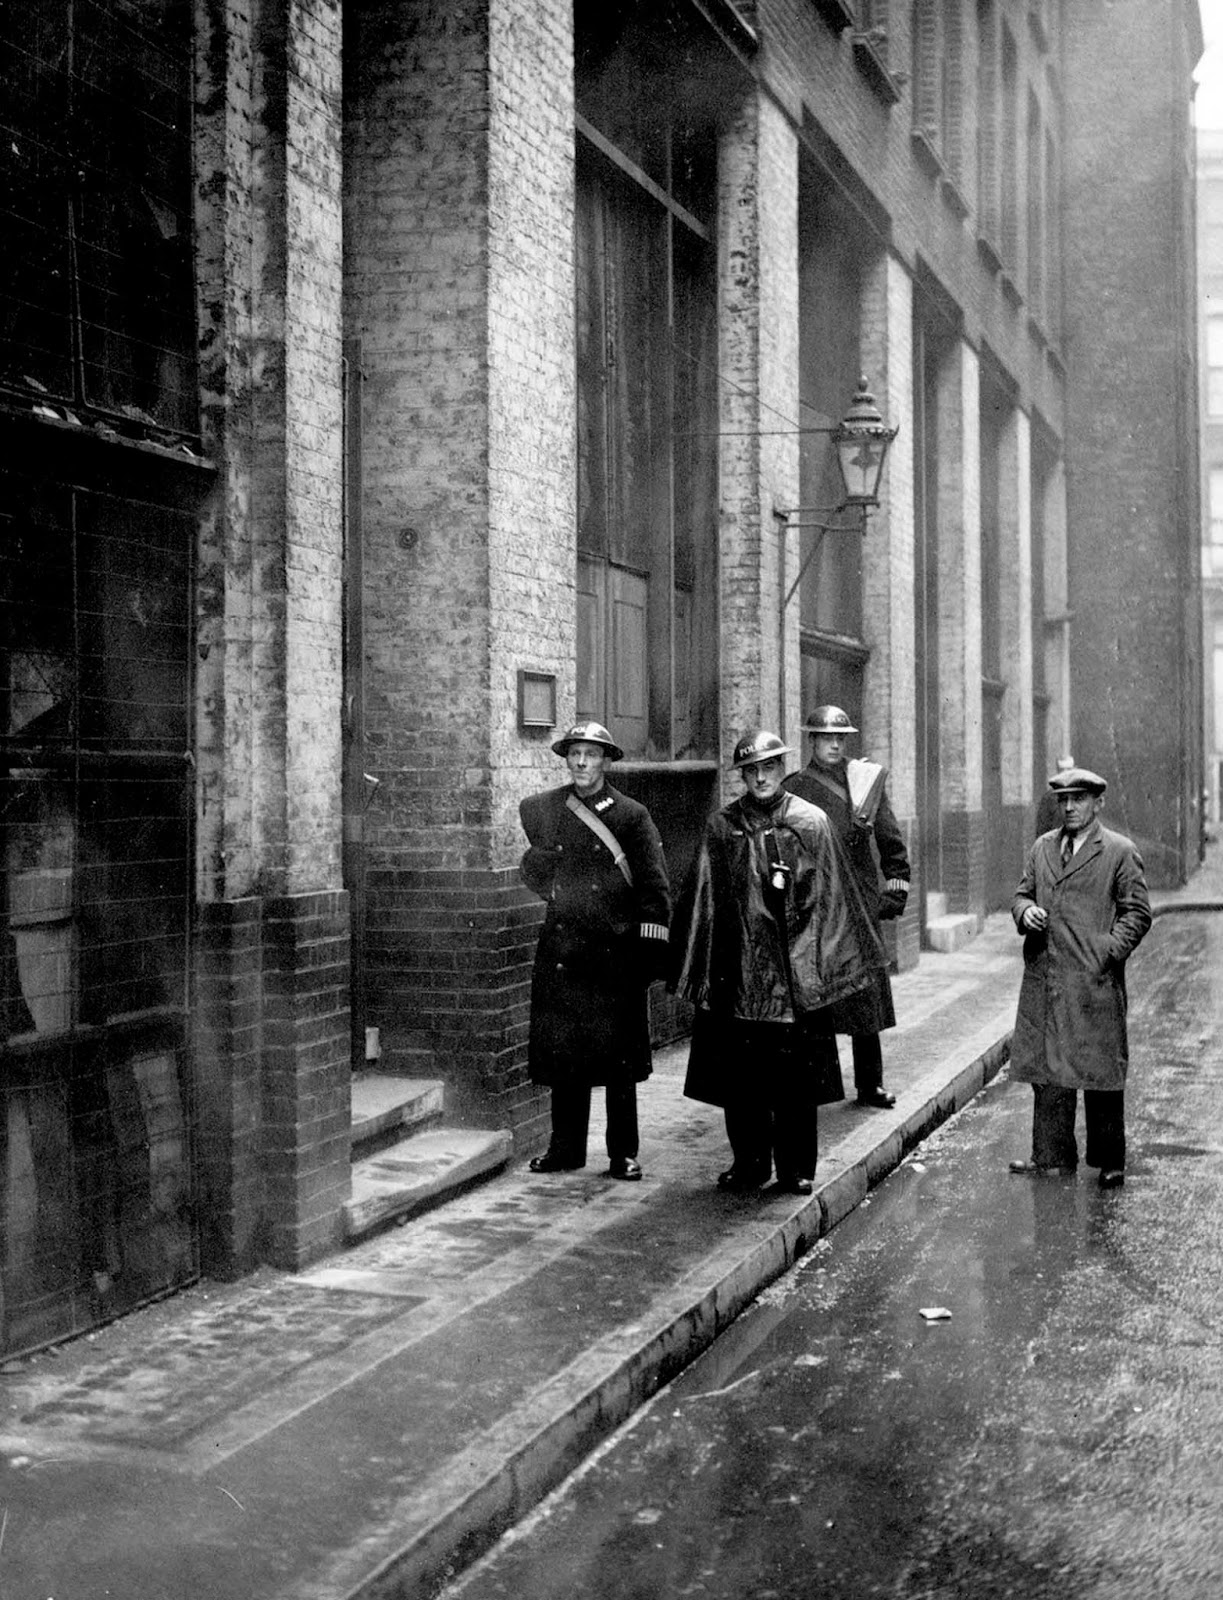 Police on duty outside the offices of 'The Daily Worker' Communist newspaper on Cayton Street, East London. On the evening prior to this detectives enforced a suppression order issued against the publication by The Home Secretary, Herbert Morrison. Printing was stopped immediately. 1941.